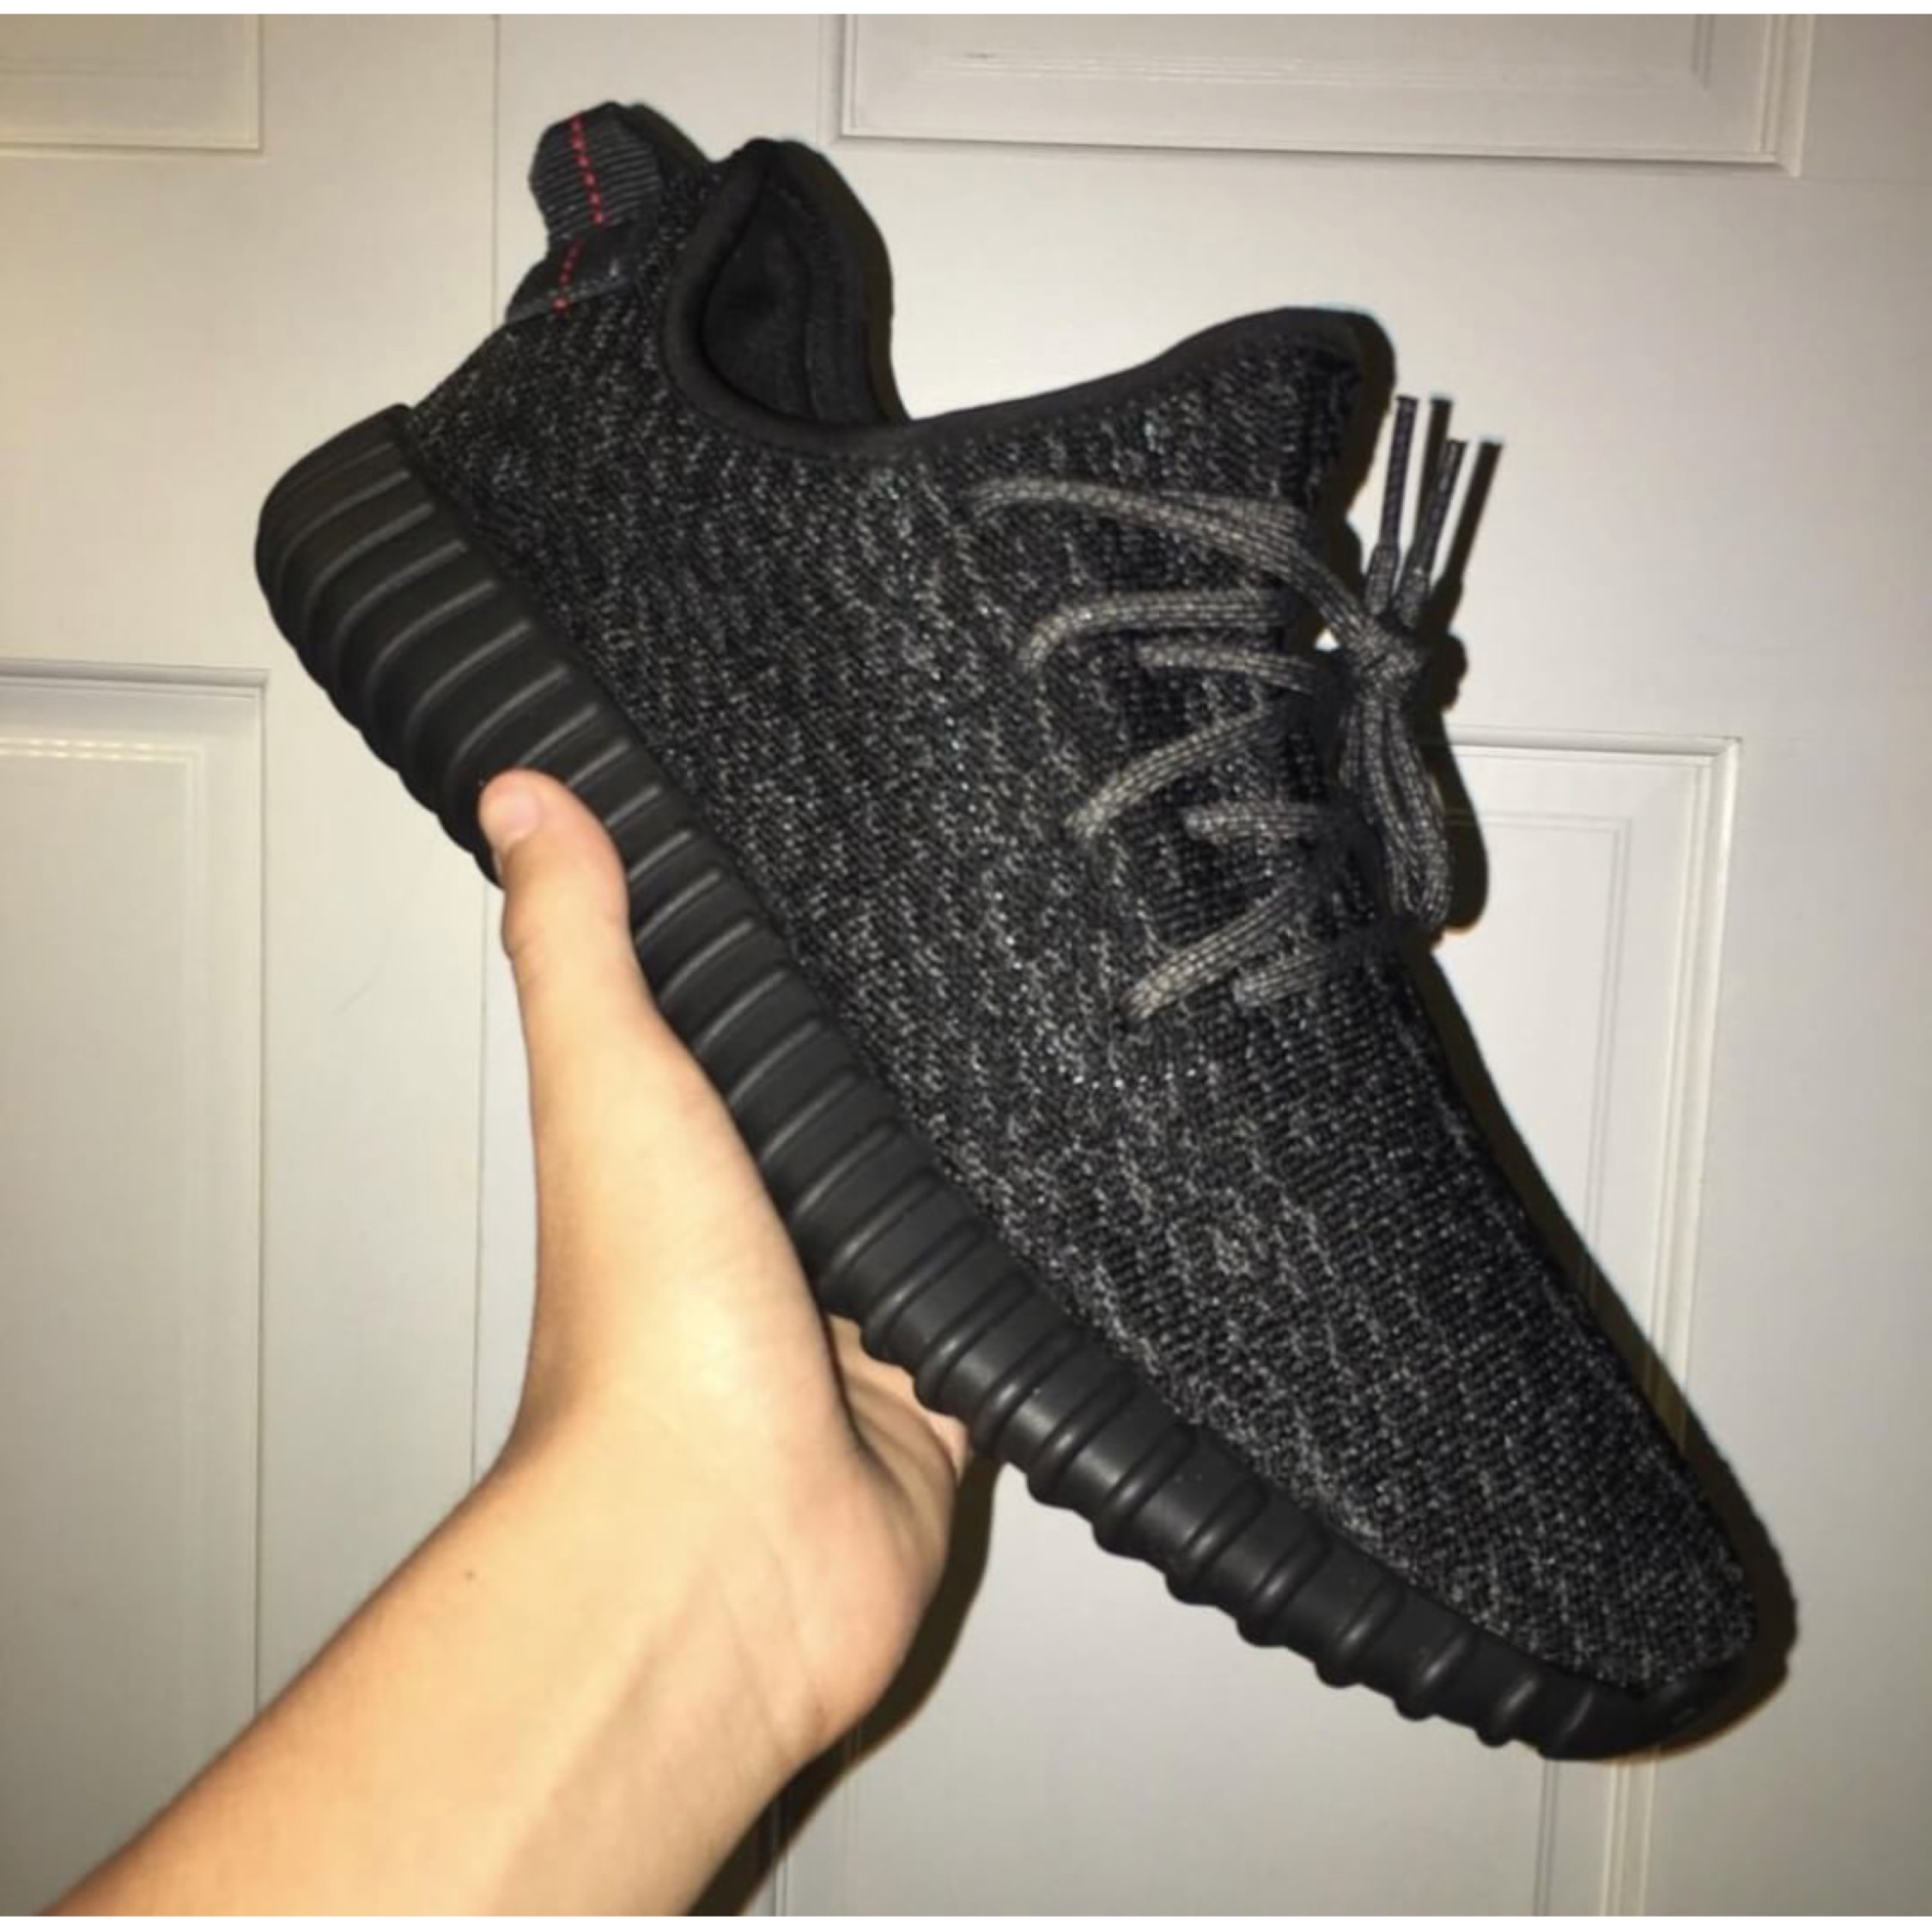 sale retailer 53972 b52f7 Yeezy Boost 350 Pirate Black